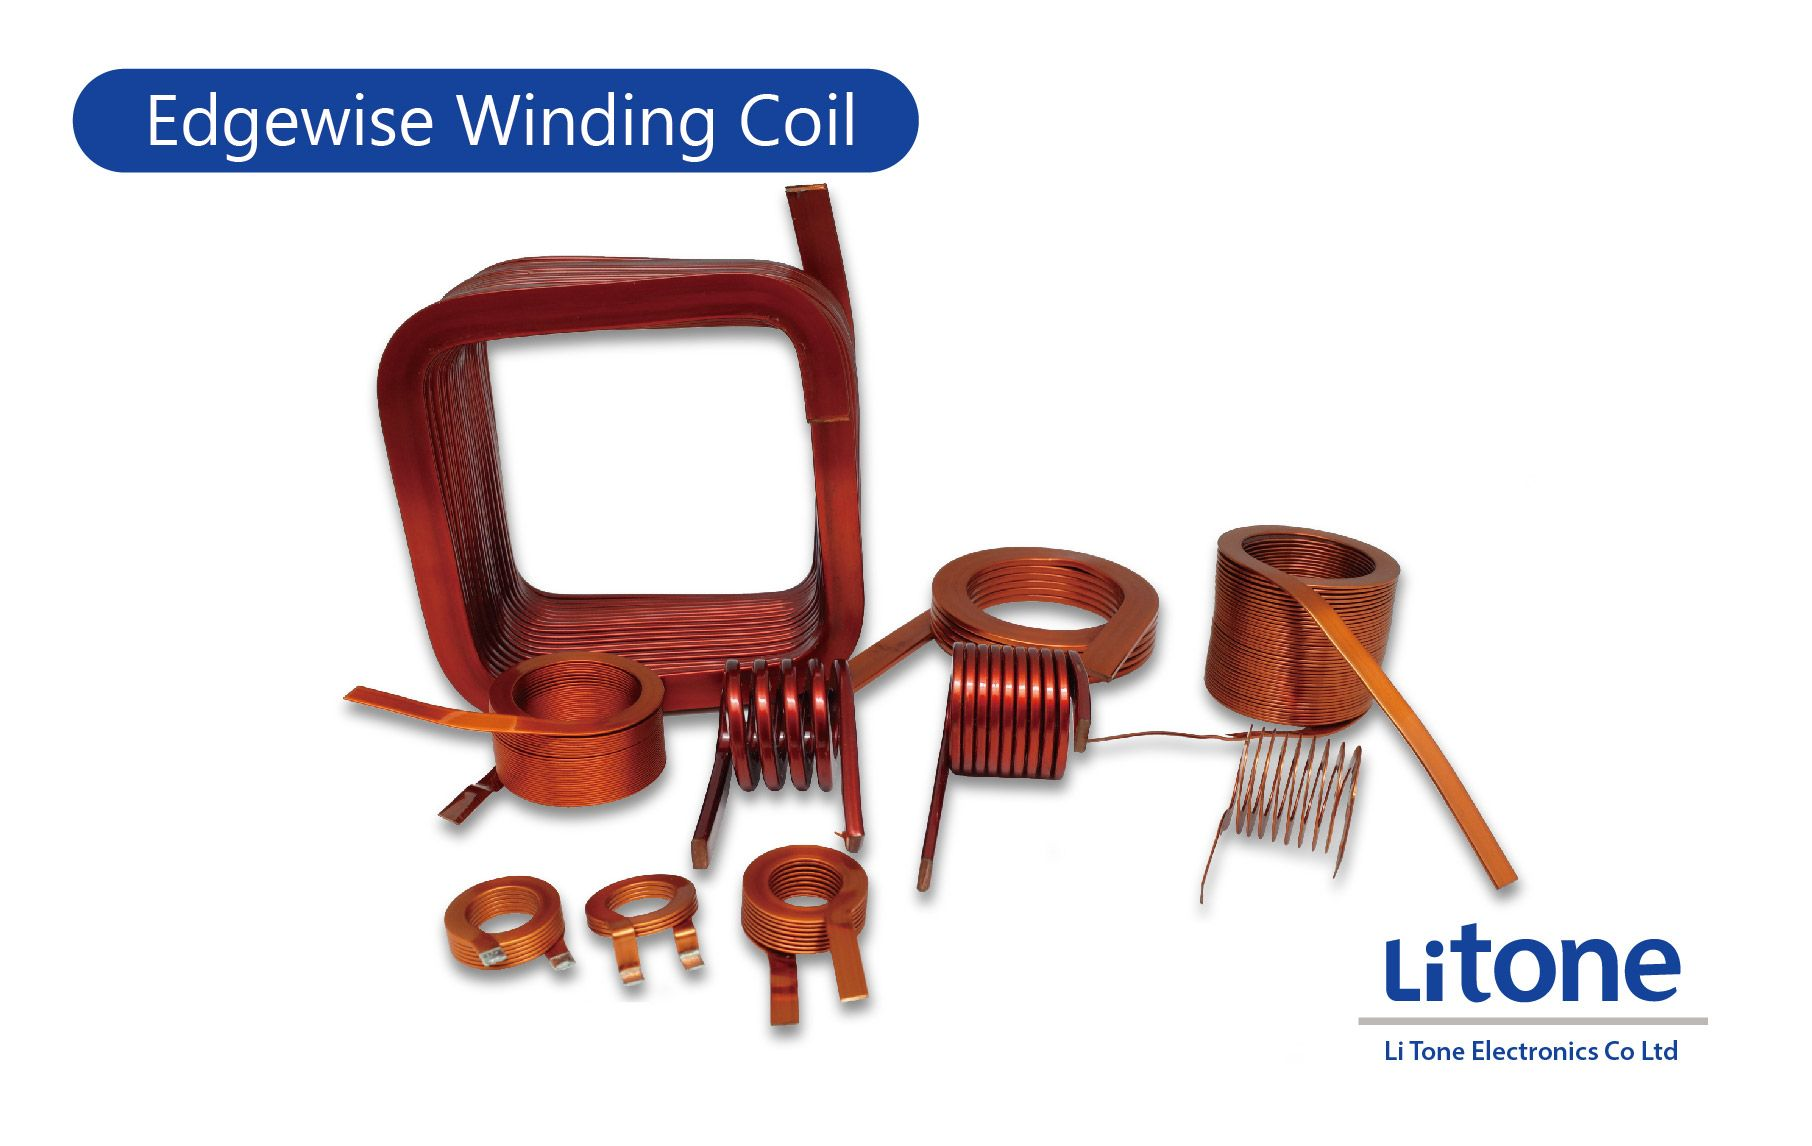 Edgewise Winding Air Coil